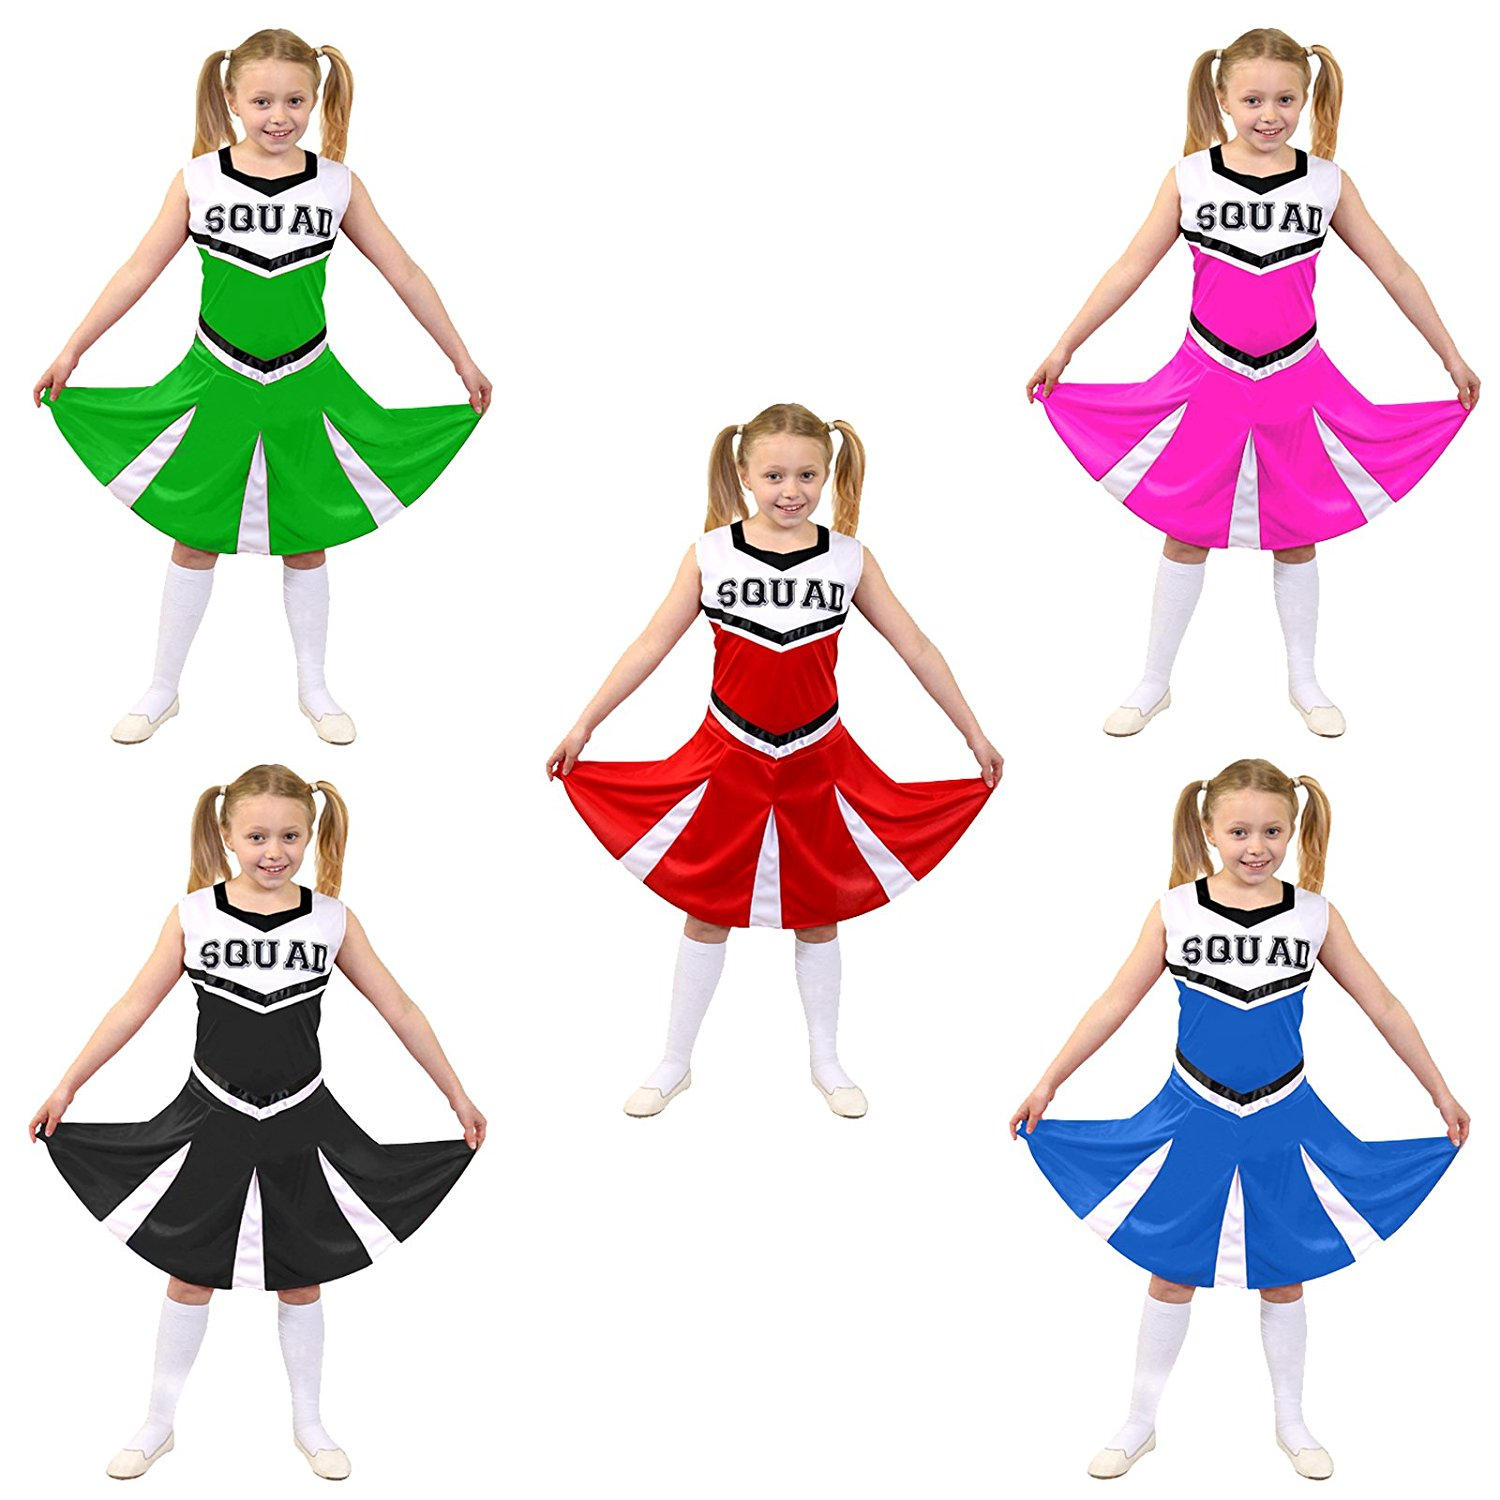 0ba5cb1ab64 Buy Cheerleader Fancy Dress Costume Girls High School Cheer Leader ...